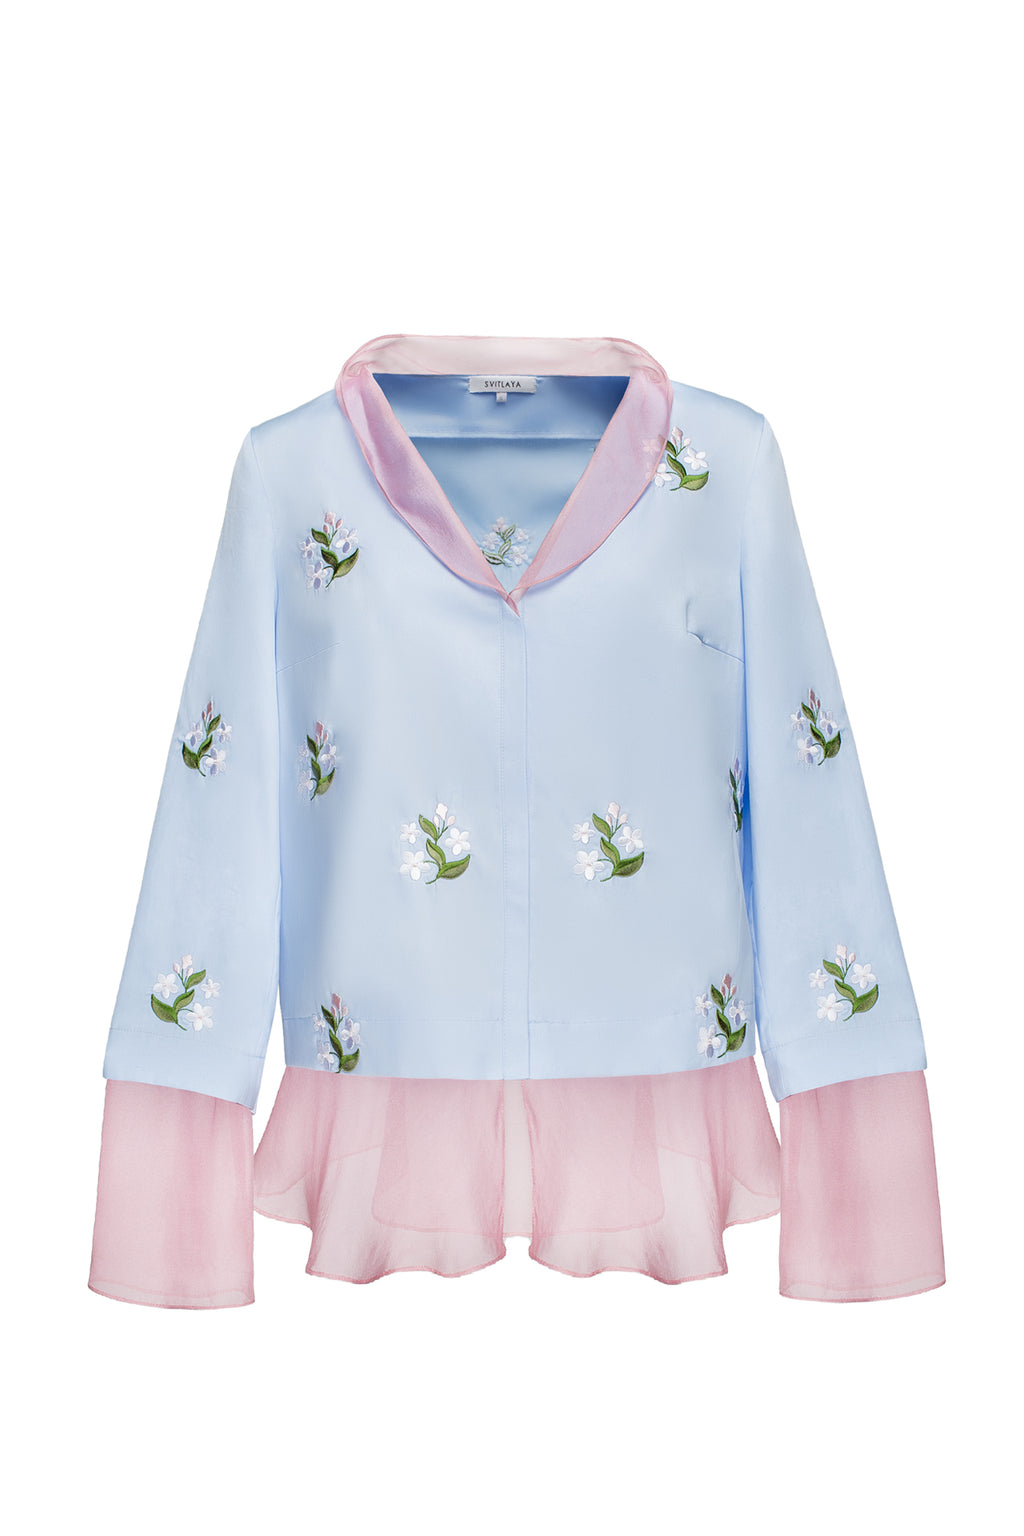 FORGET-ME-NOTS blouse in sky blue cotton